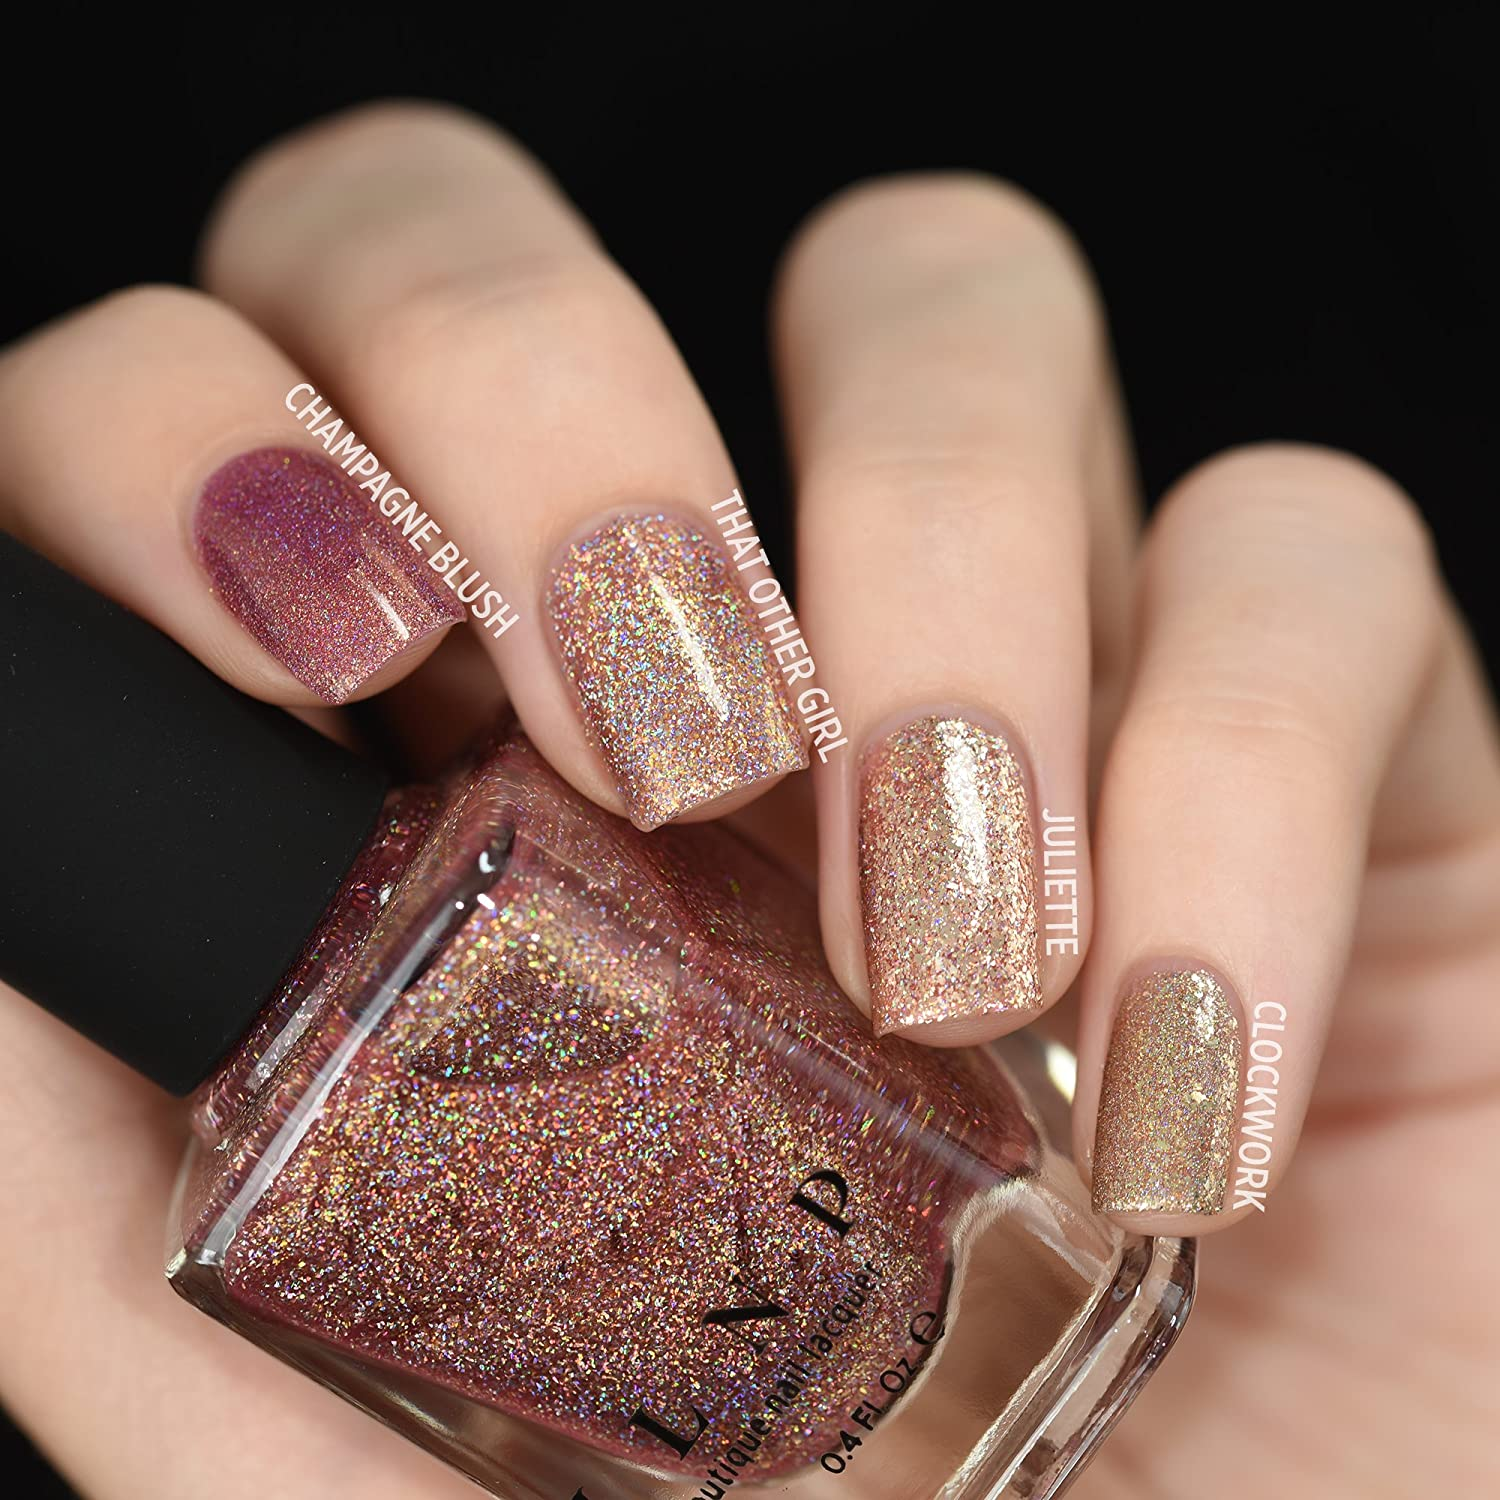 Amazon.com : ILNP That Other Girl - Rose Gold Ultra Holographic Nail ...